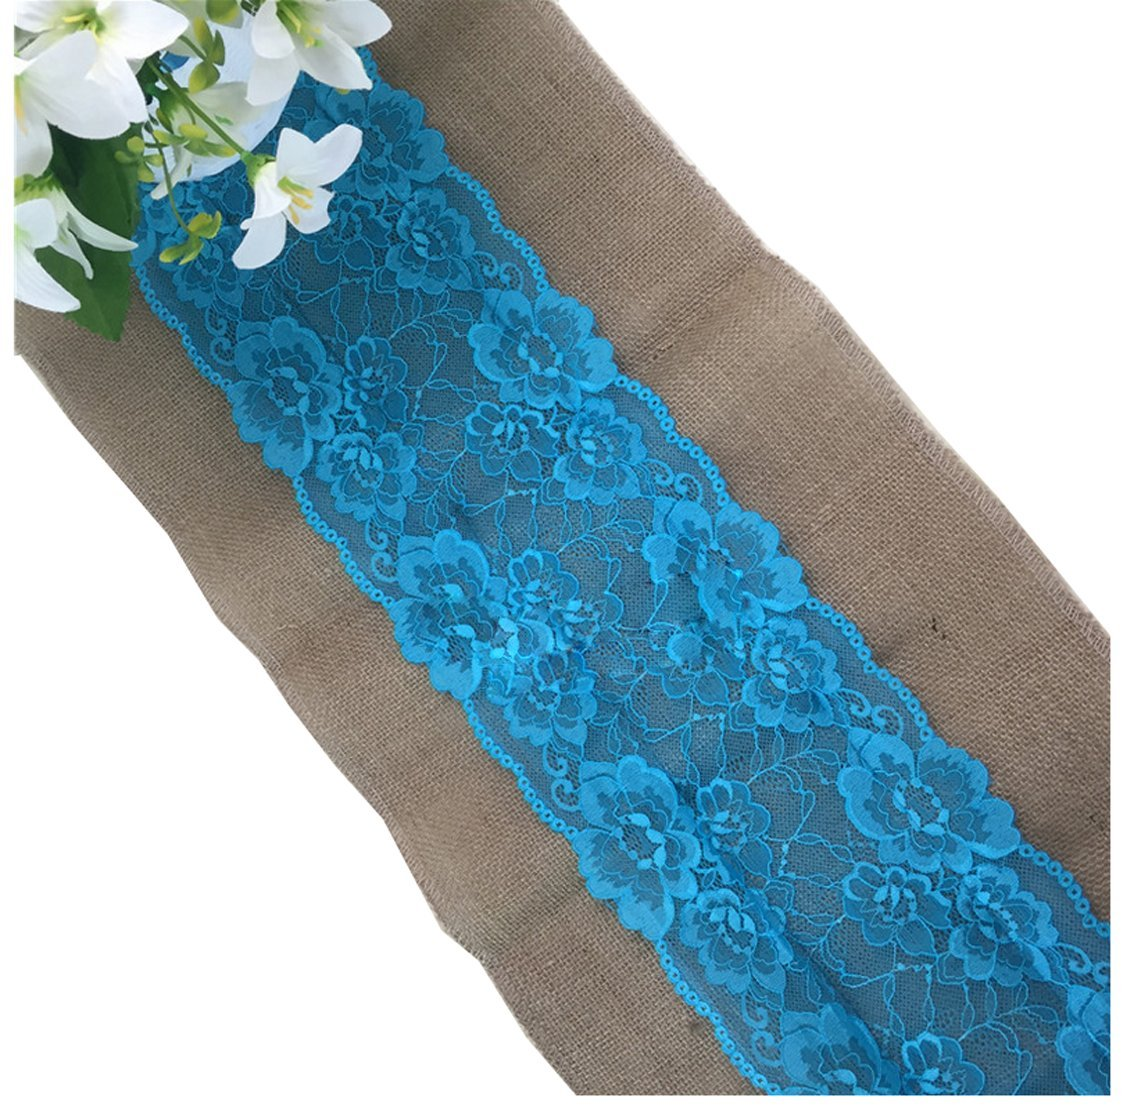 Huachnet Natural Jute Burlap Hessian Table Runner with Lace Trim Rustic Wedding Party Decor Sewing Craft 30*275CM (3 Yard)- Ocean Blue